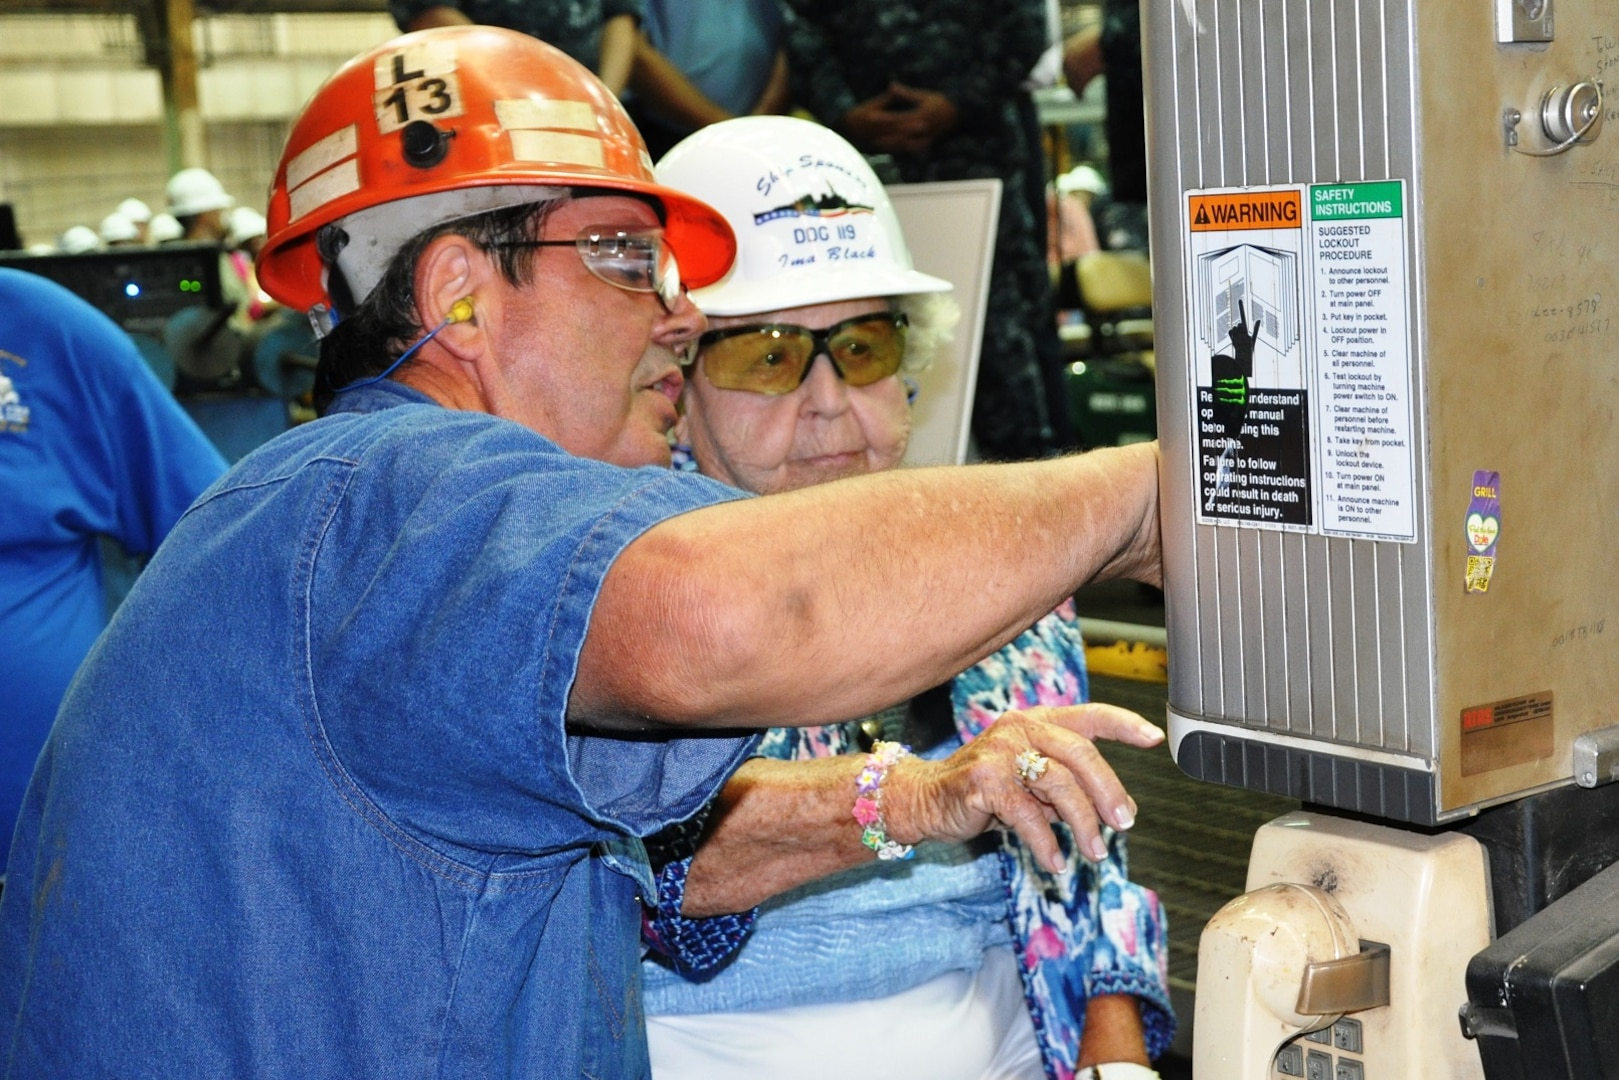 150721-N-EW716-001 (July 21, 2015) PASCAGOULA, Miss. - Mrs. Ima Black, widow of the first Master Chief Petty Officer of the Navy, Delbert Black, begins the mechanized process of cutting the steel plate with the help of Paul Bosarge, Huntington Ingalls Industries burner/work leader.  Mrs. Black is the sponsor for the destroyer DDG 119 -- the future USS Delbert D. Black -- which formally started fabrication in Ingalls' Pascagoula, Miss., shipyard today.